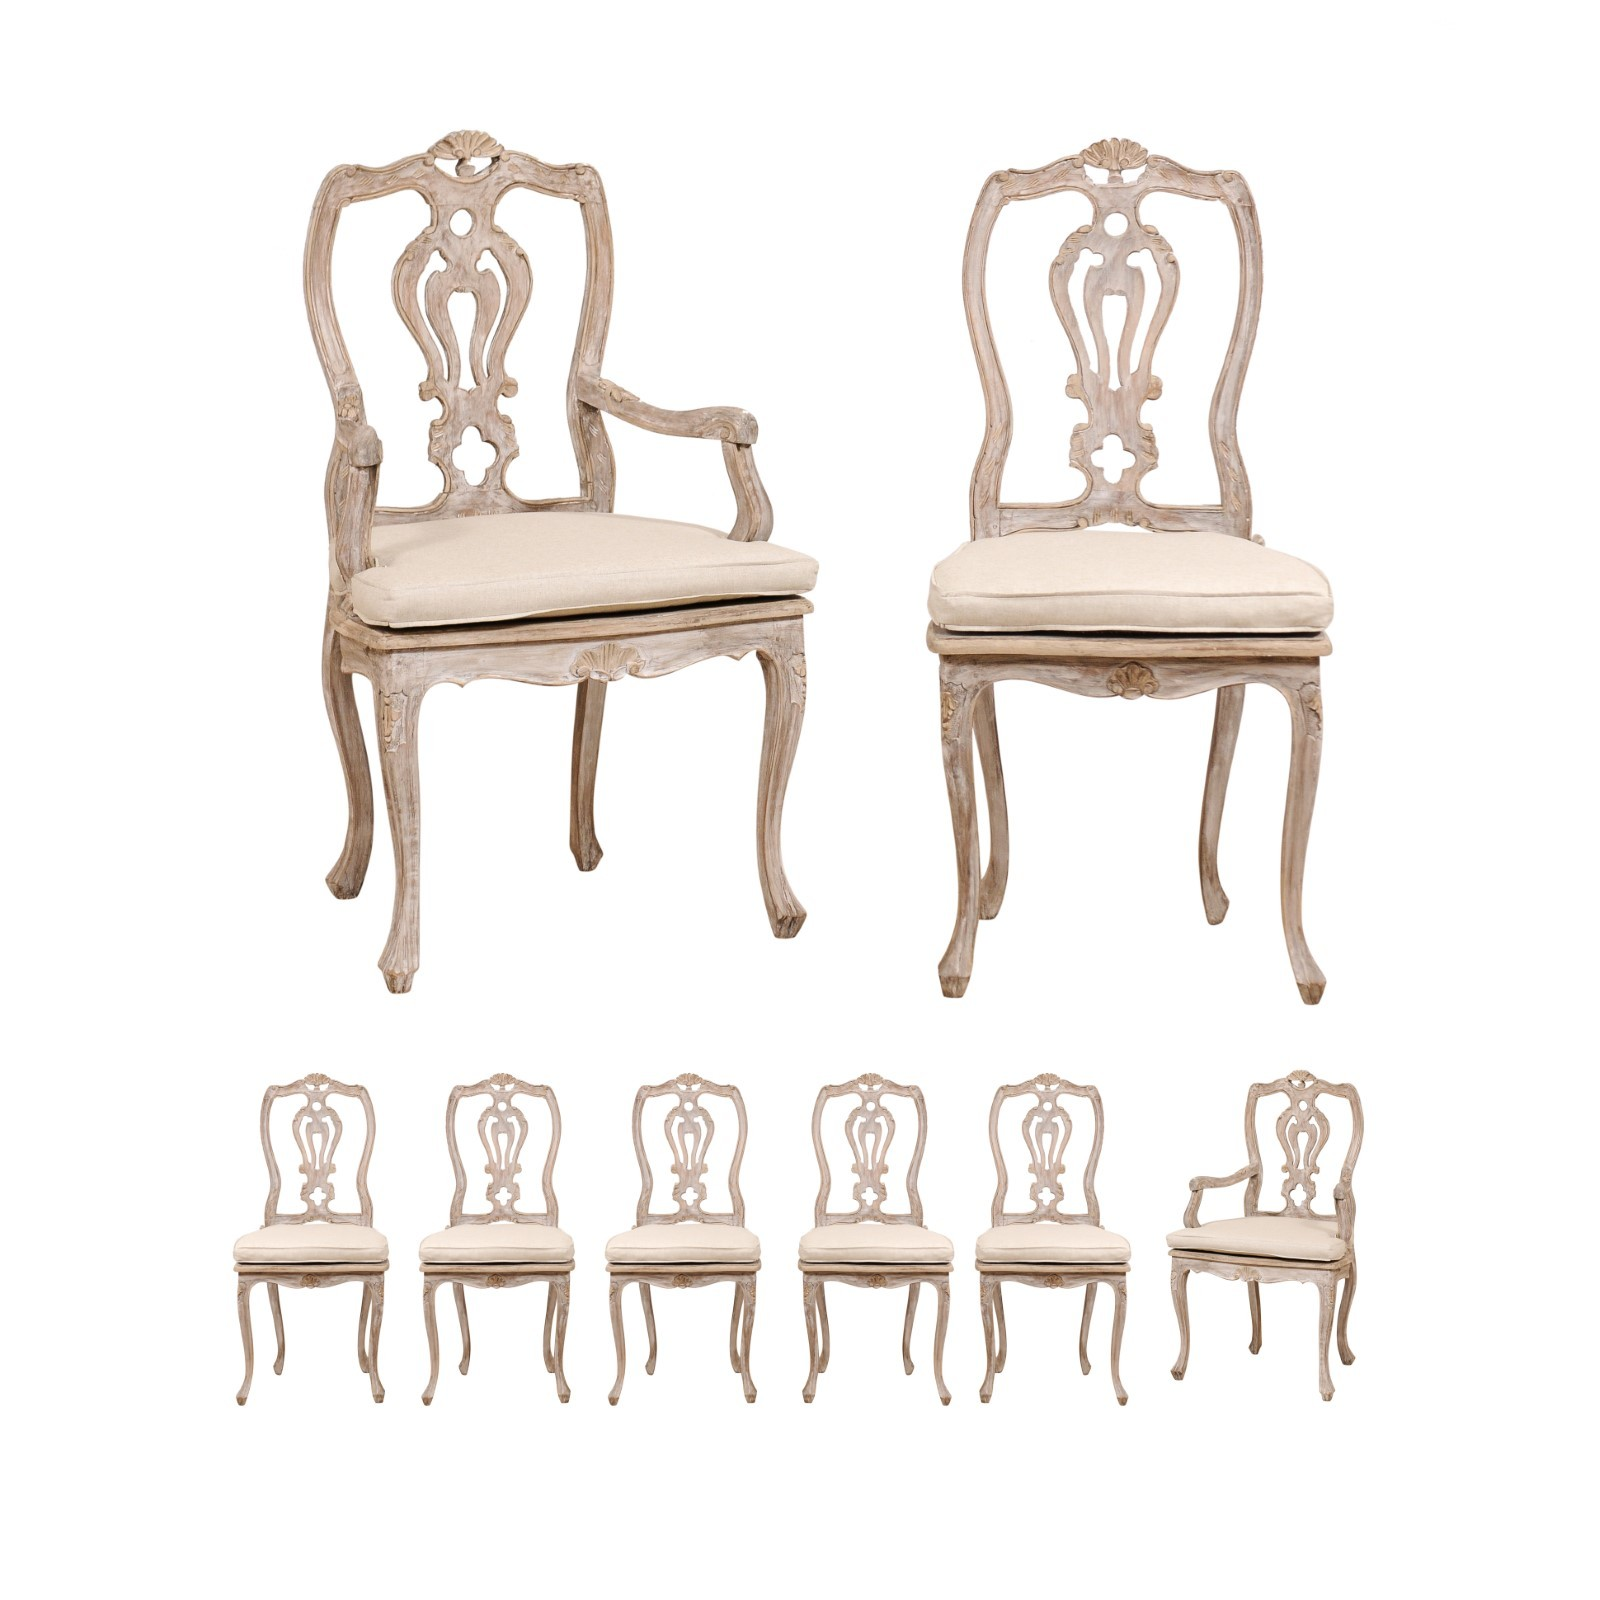 Italian Dining Chairs Set Of 8 Italian Dining Chairs W Cushions 404 A Tyner Antiques